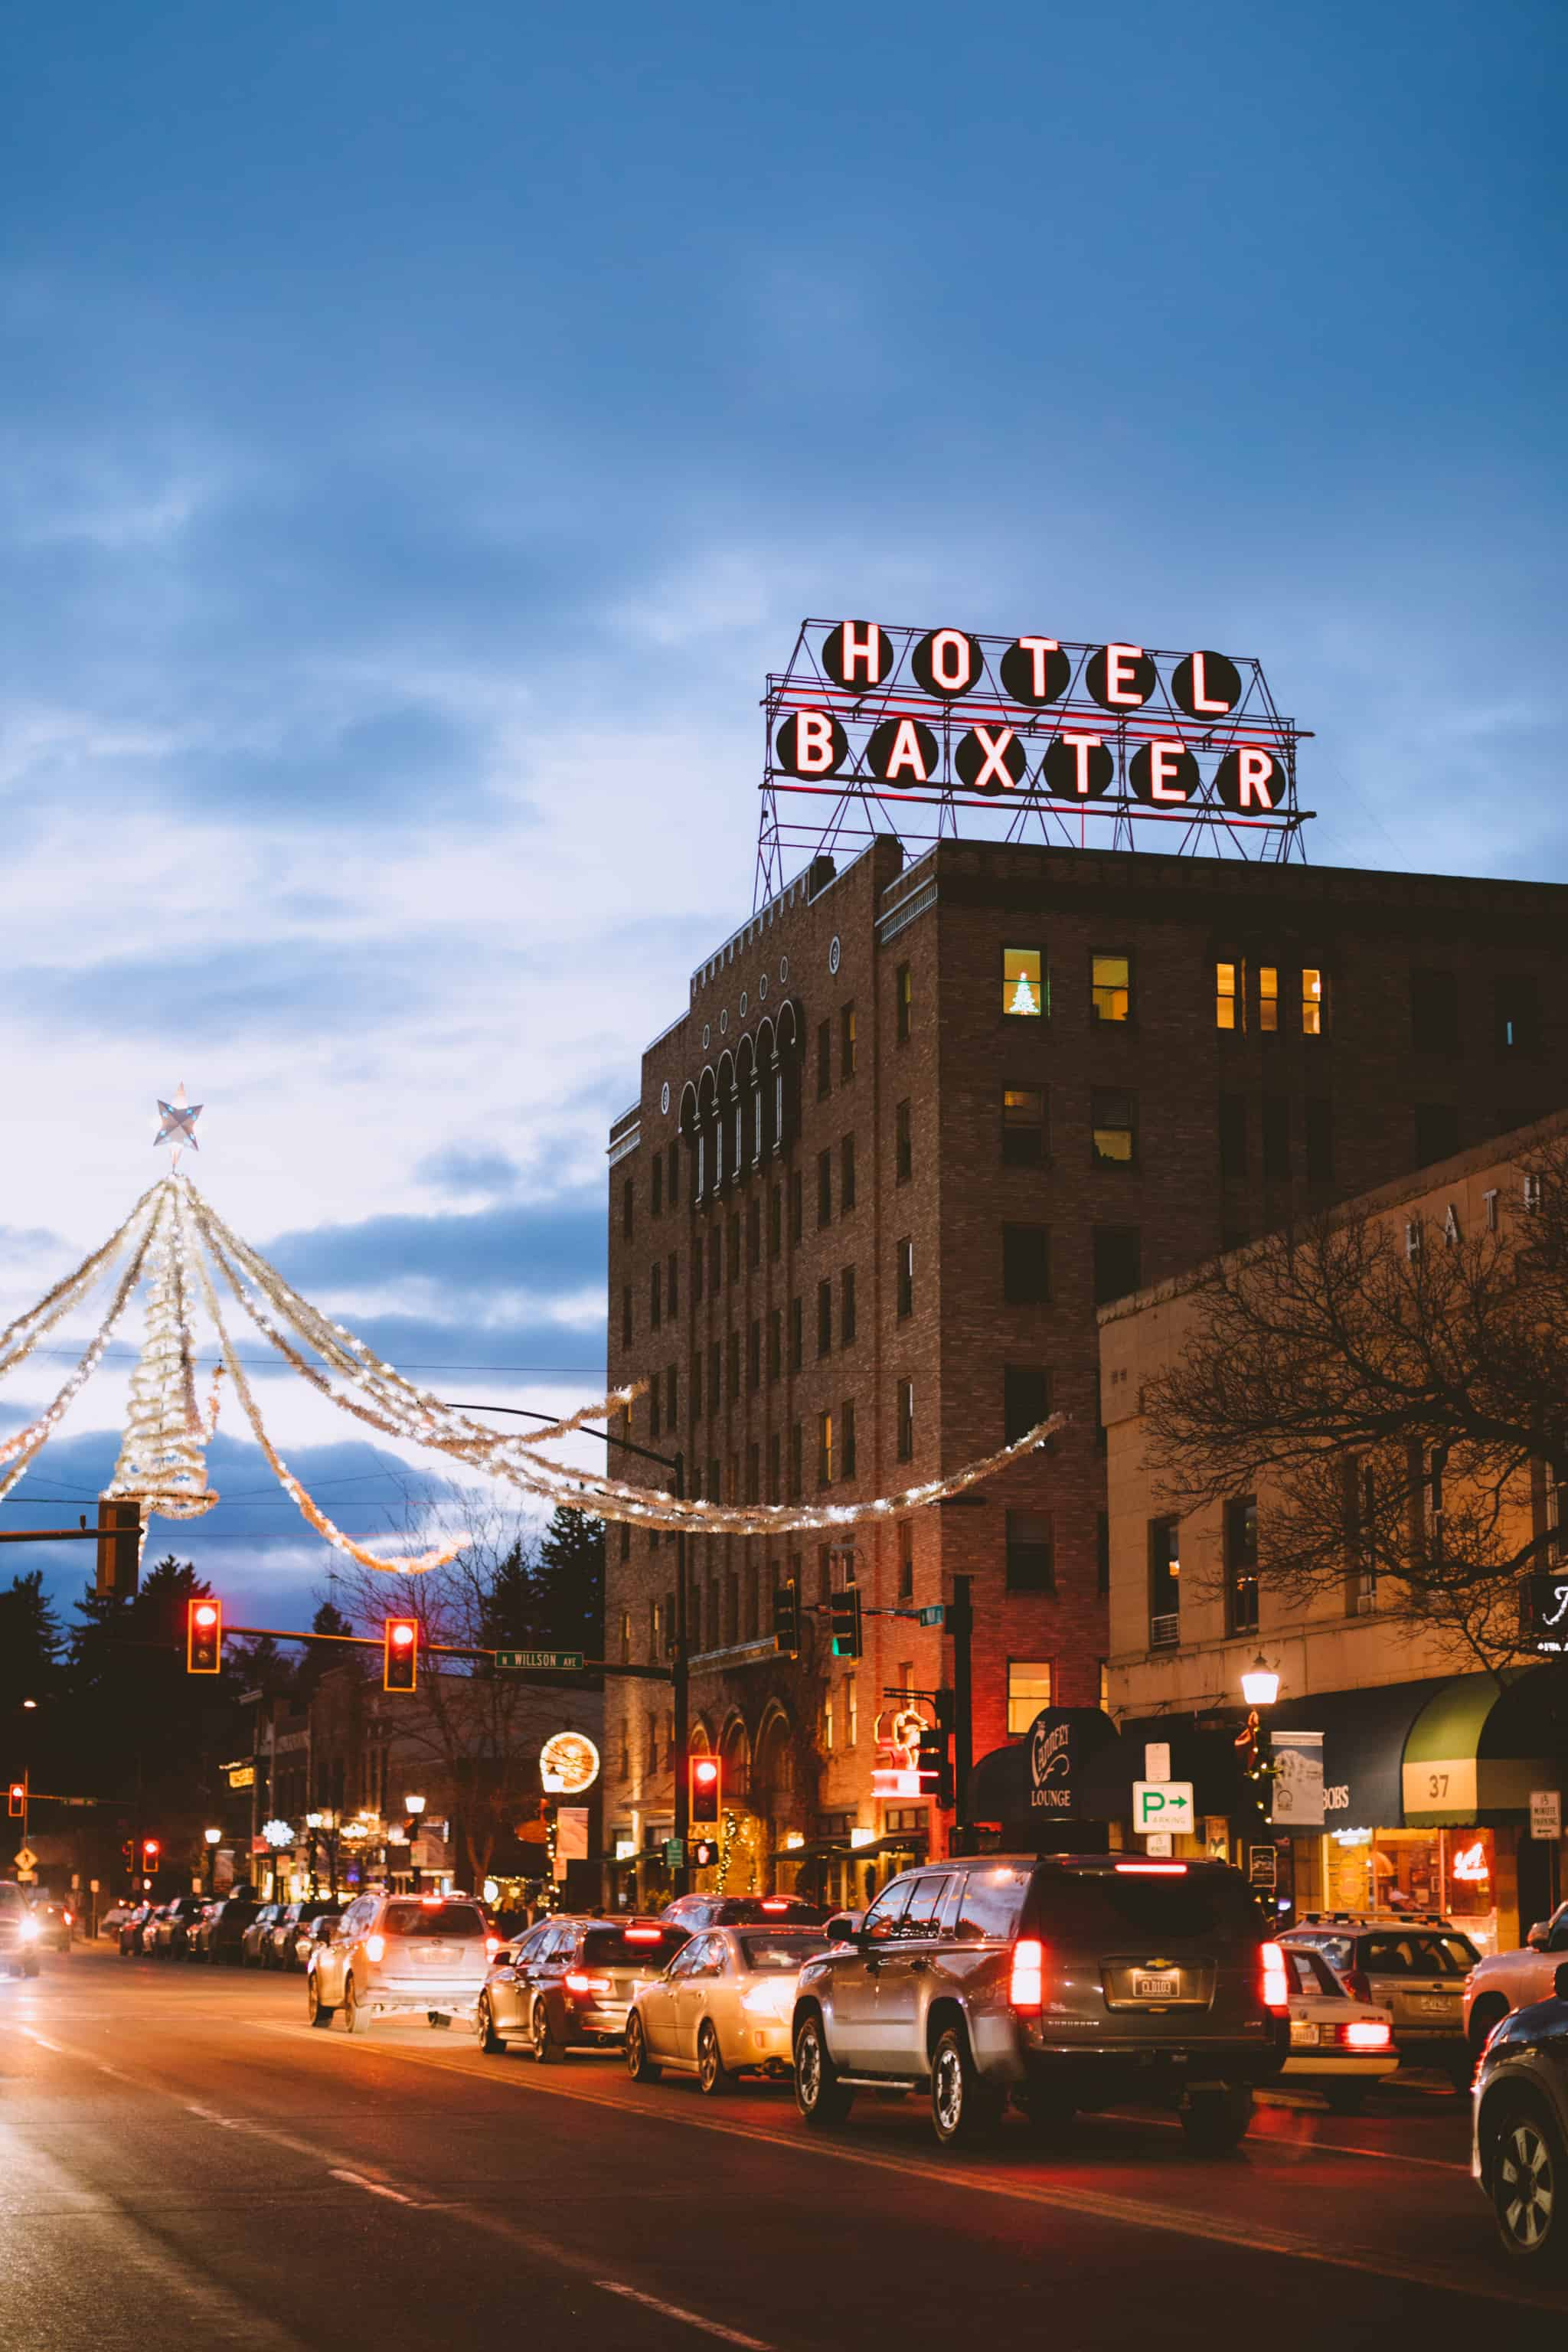 View of Hotel Baxter Downtown Bozeman in Evening with holiday lights - TheMandagies.com